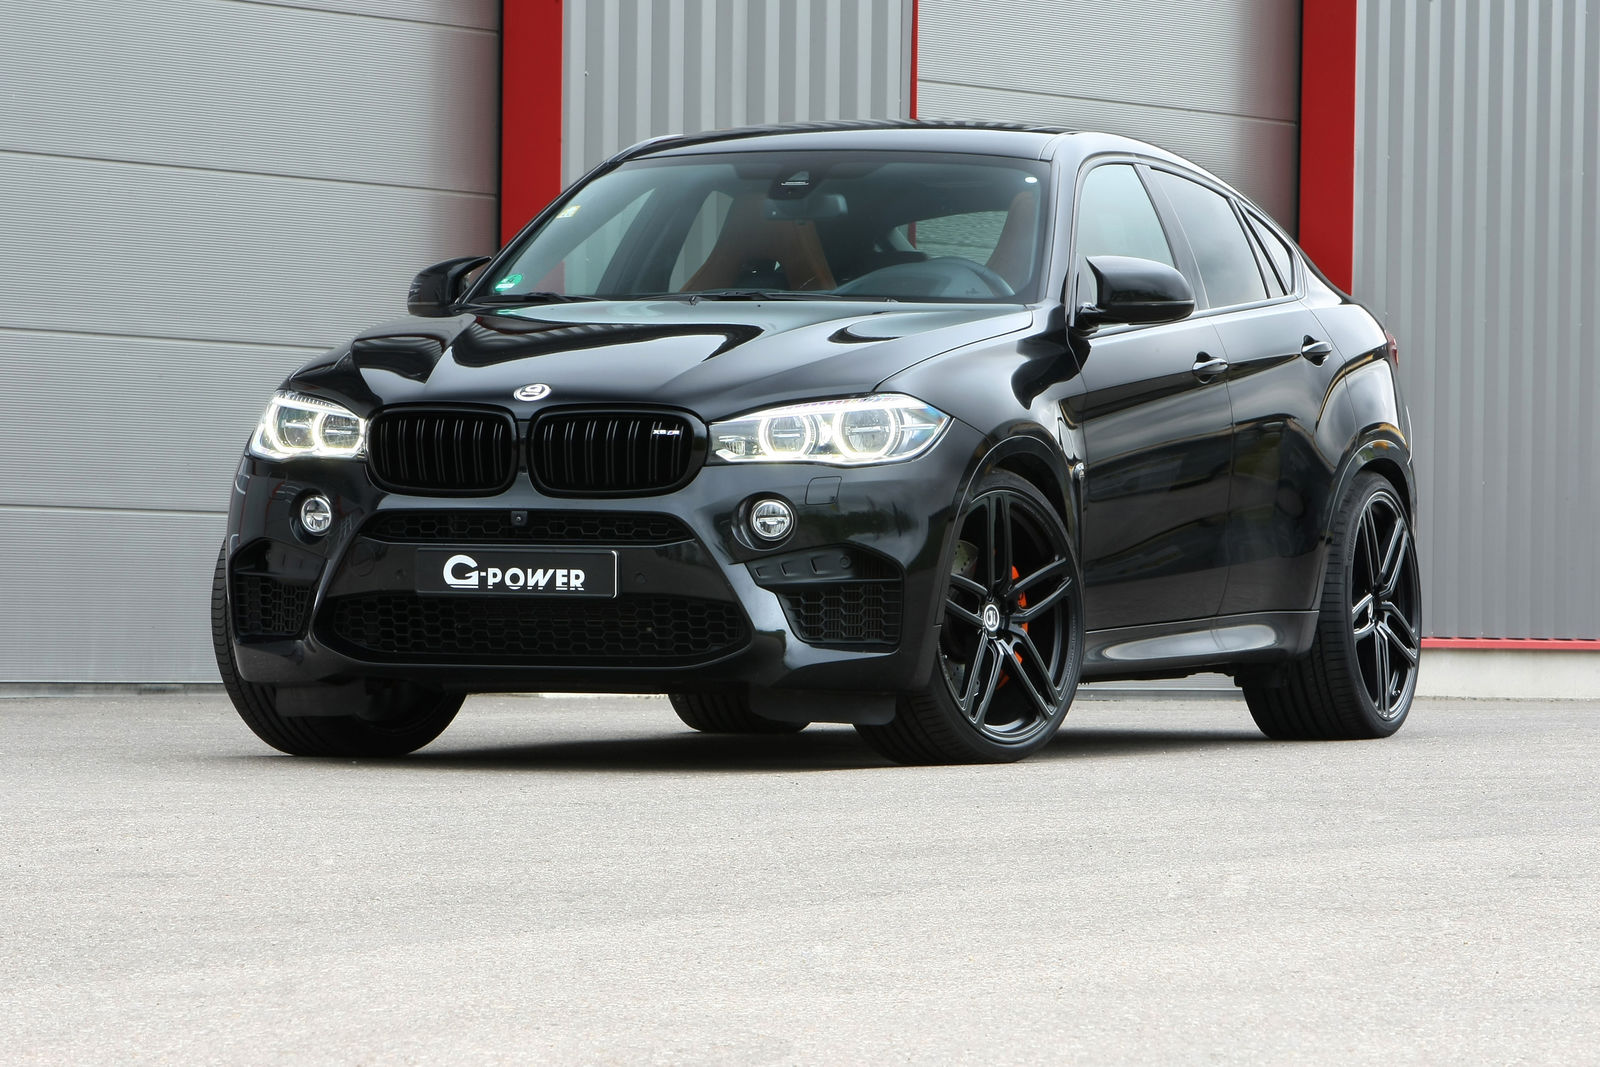 BMW 5 Series how much are bmws in germany G-Power BMW X6 M delivers 739 horsepower